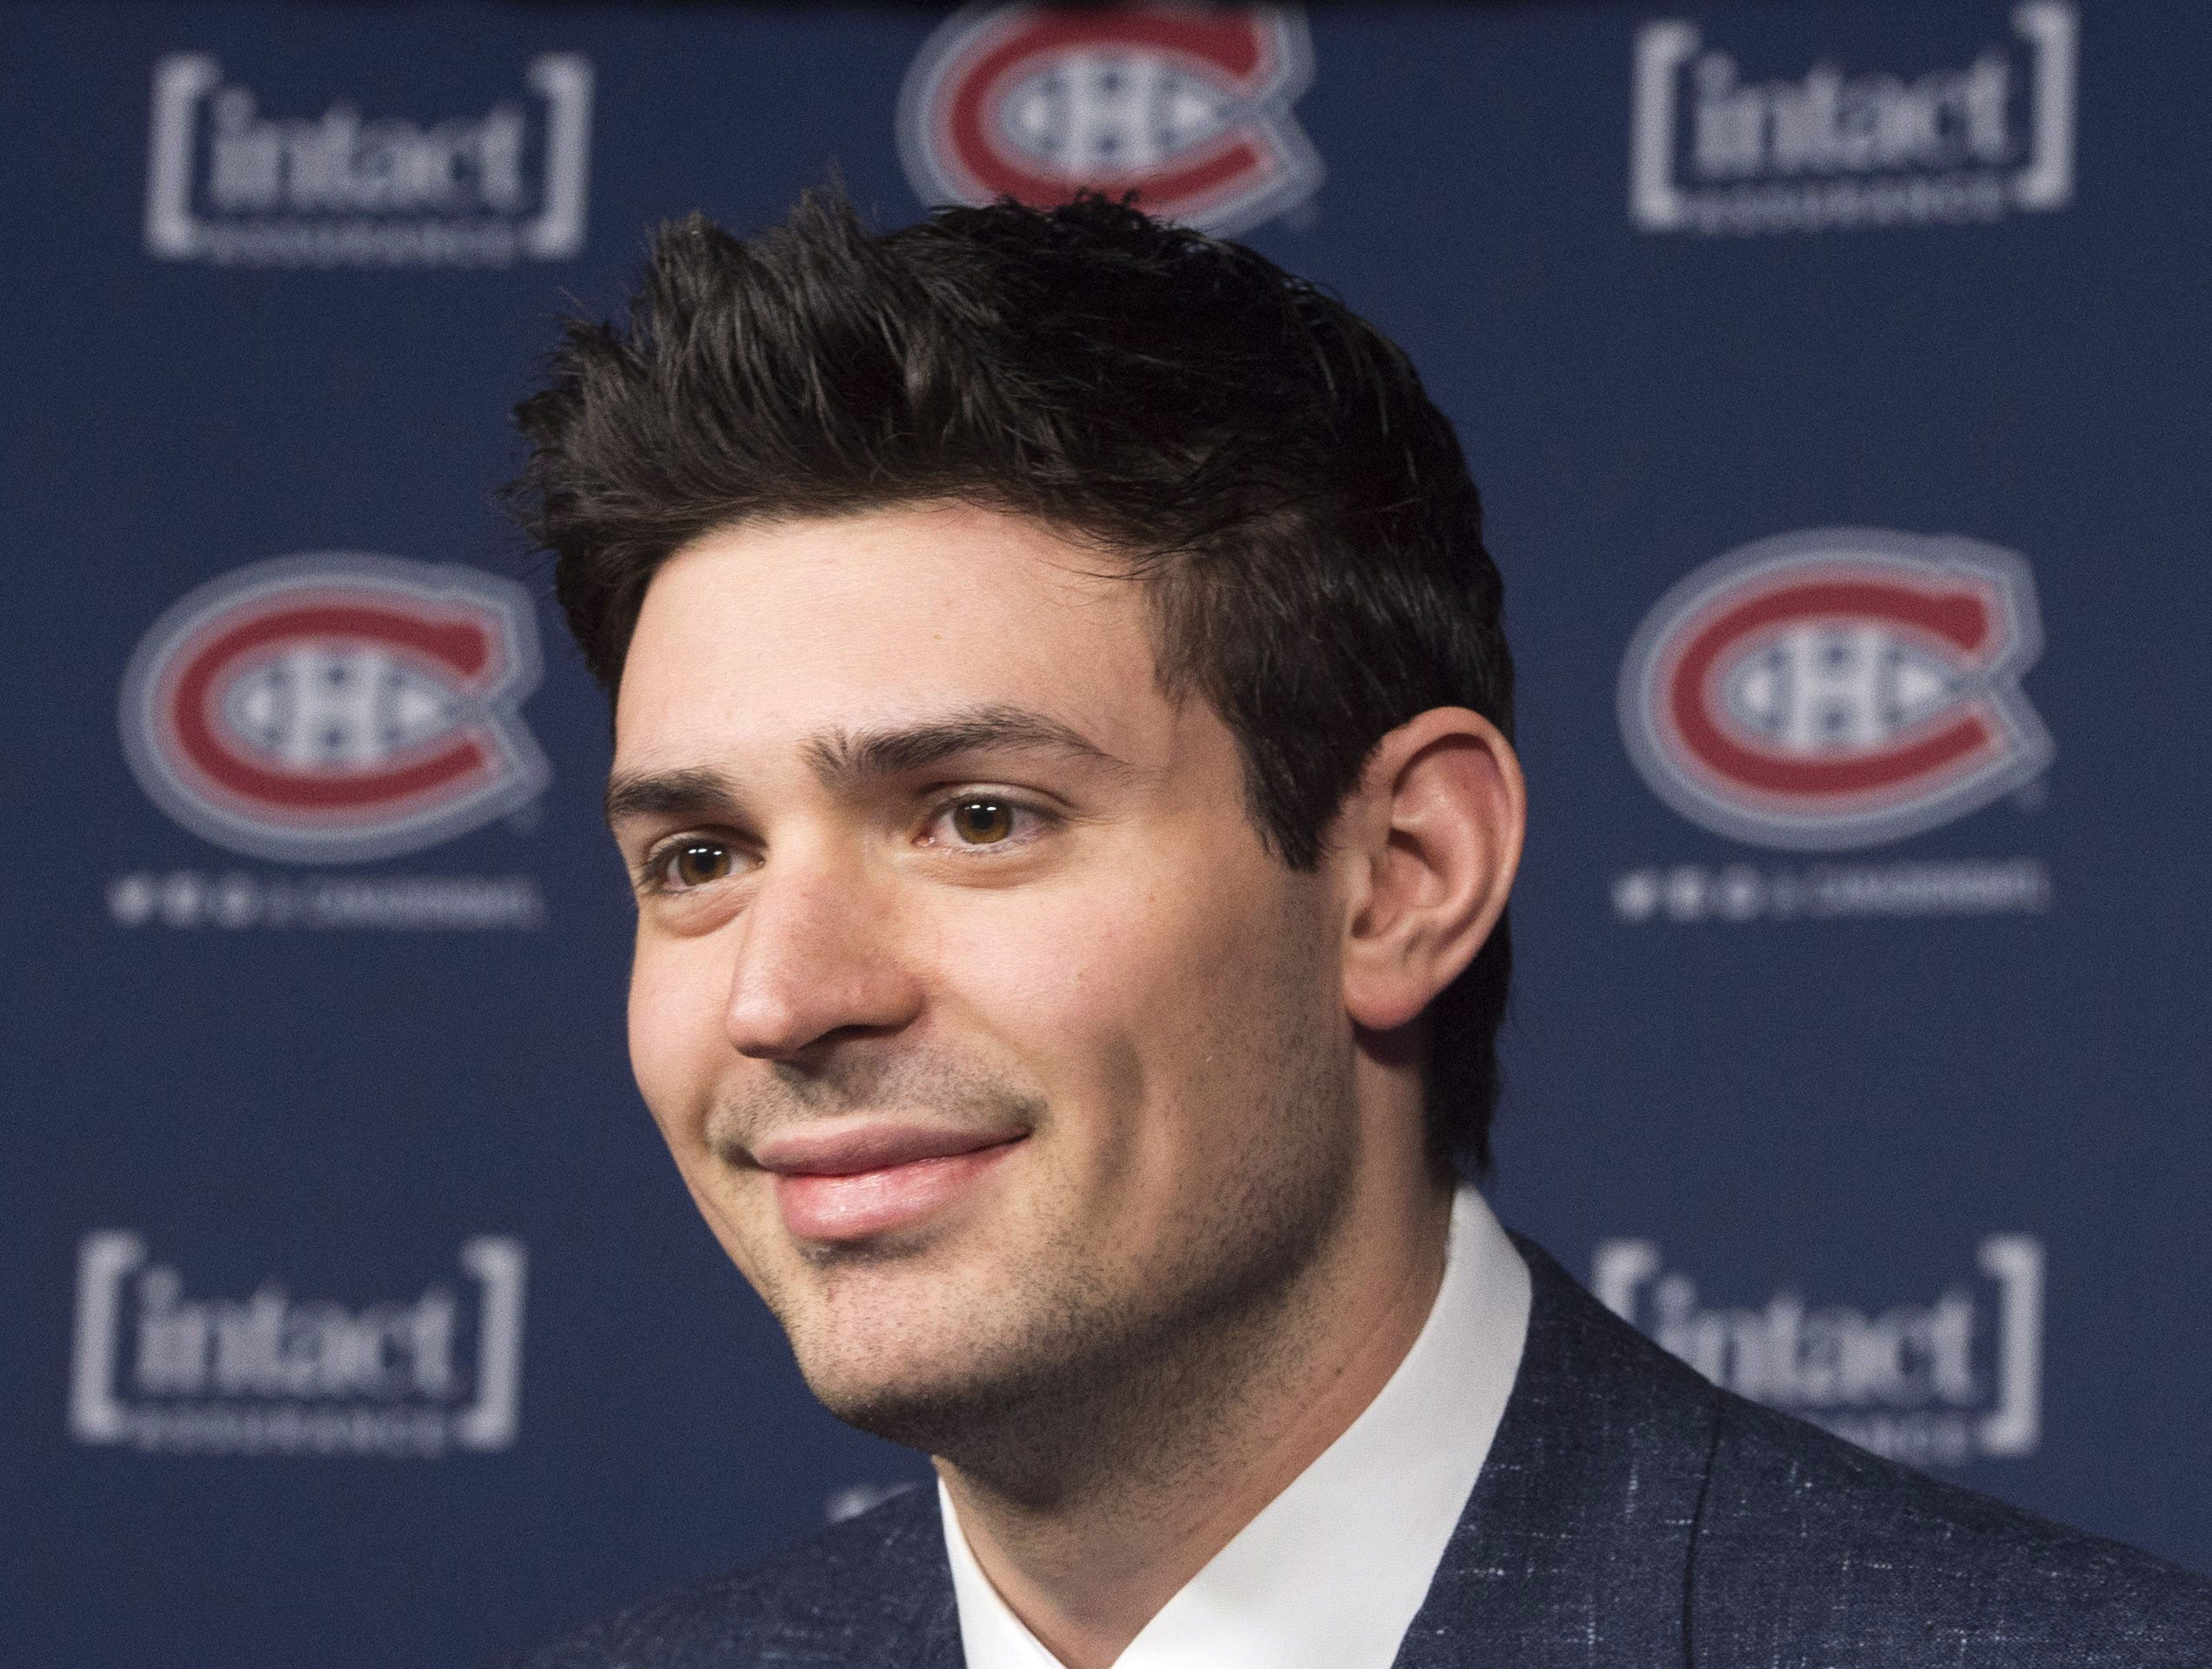 Montreal Canadiens' goaltender Carey Price speaks to the media after winning the Lou Marsh award as Canada's Athlete of the Year, in Montreal, on Tuesday, Dec. 15, 2015. (Ryan Remiorz/The Canadian Press via AP) MANDATORY CREDIT